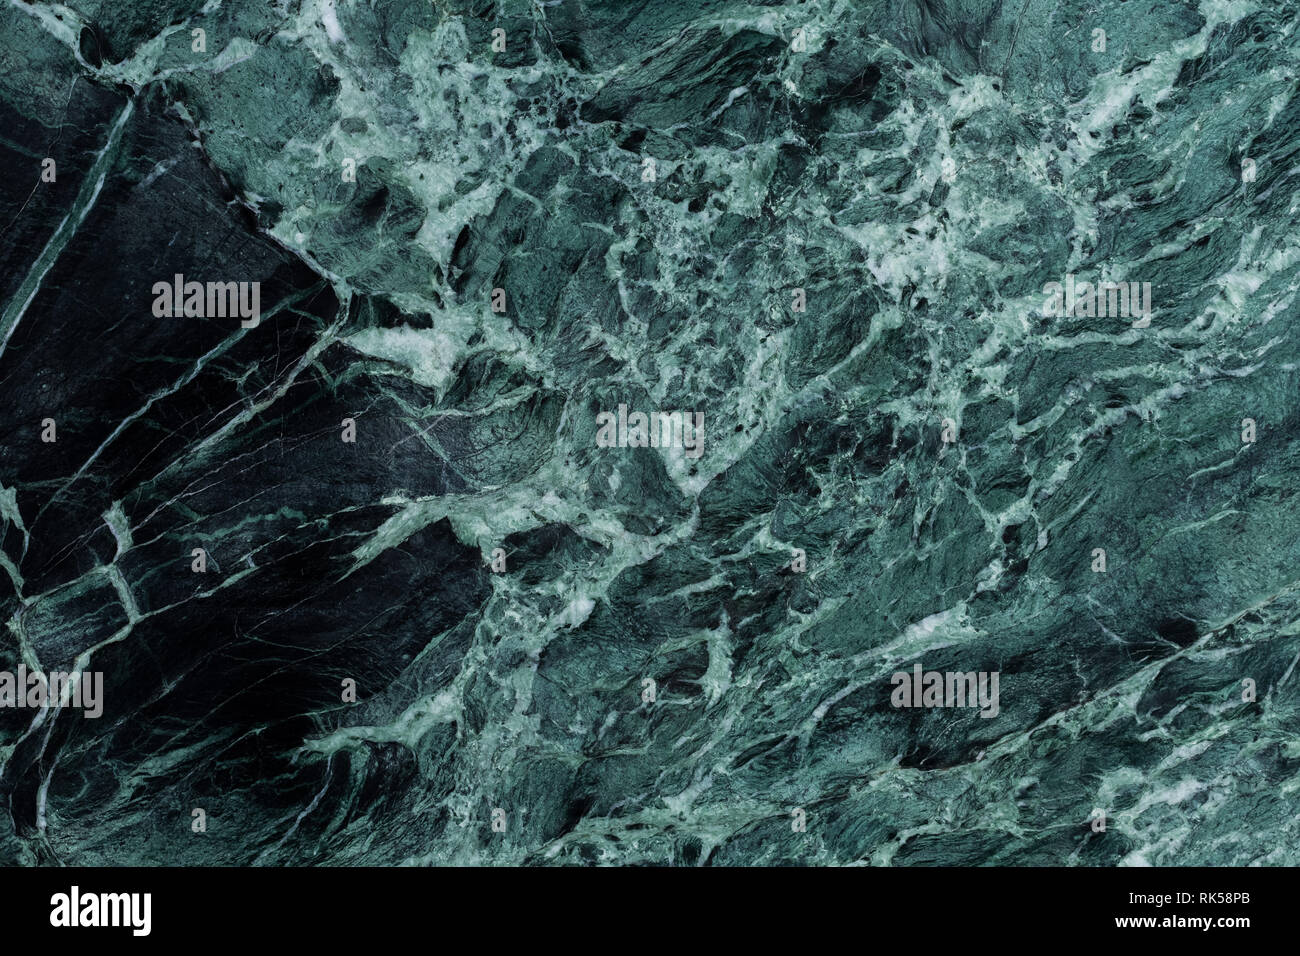 Green Marble Texture High Resolution Stock Photography And Images Alamy